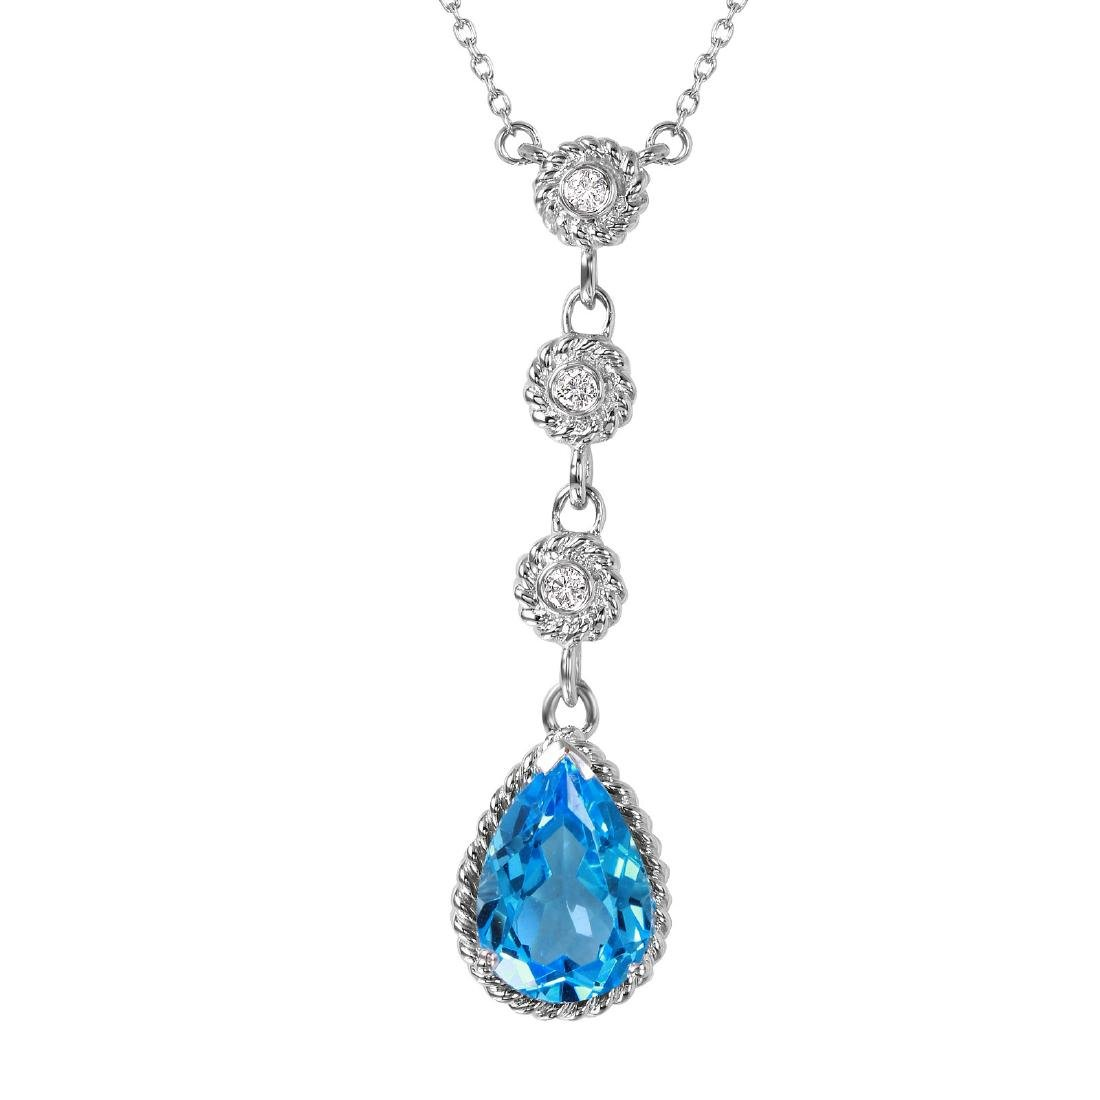 14KT White Gold 2.14ctw Topaz Diamond Necklace Length - 4